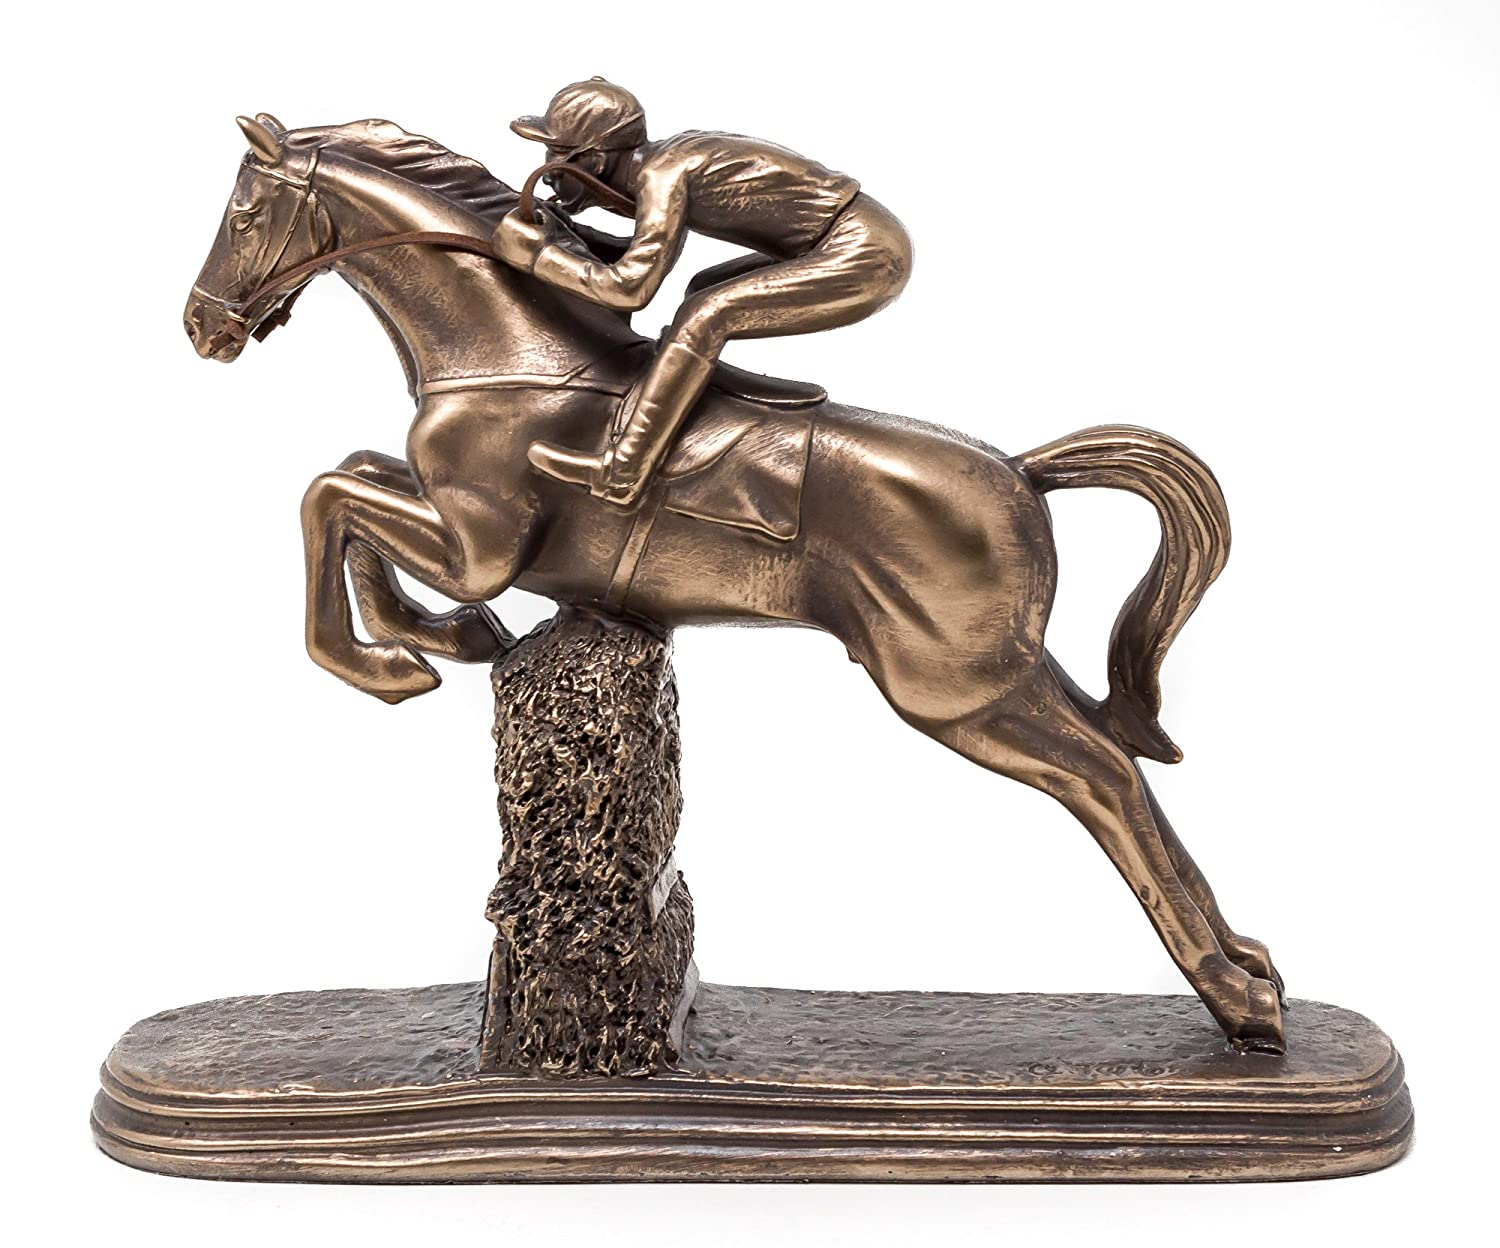 Jumping Horse Racing Statue Bronze Sculpture With Jockey Steeplechaser Ornament Artistic Bronze